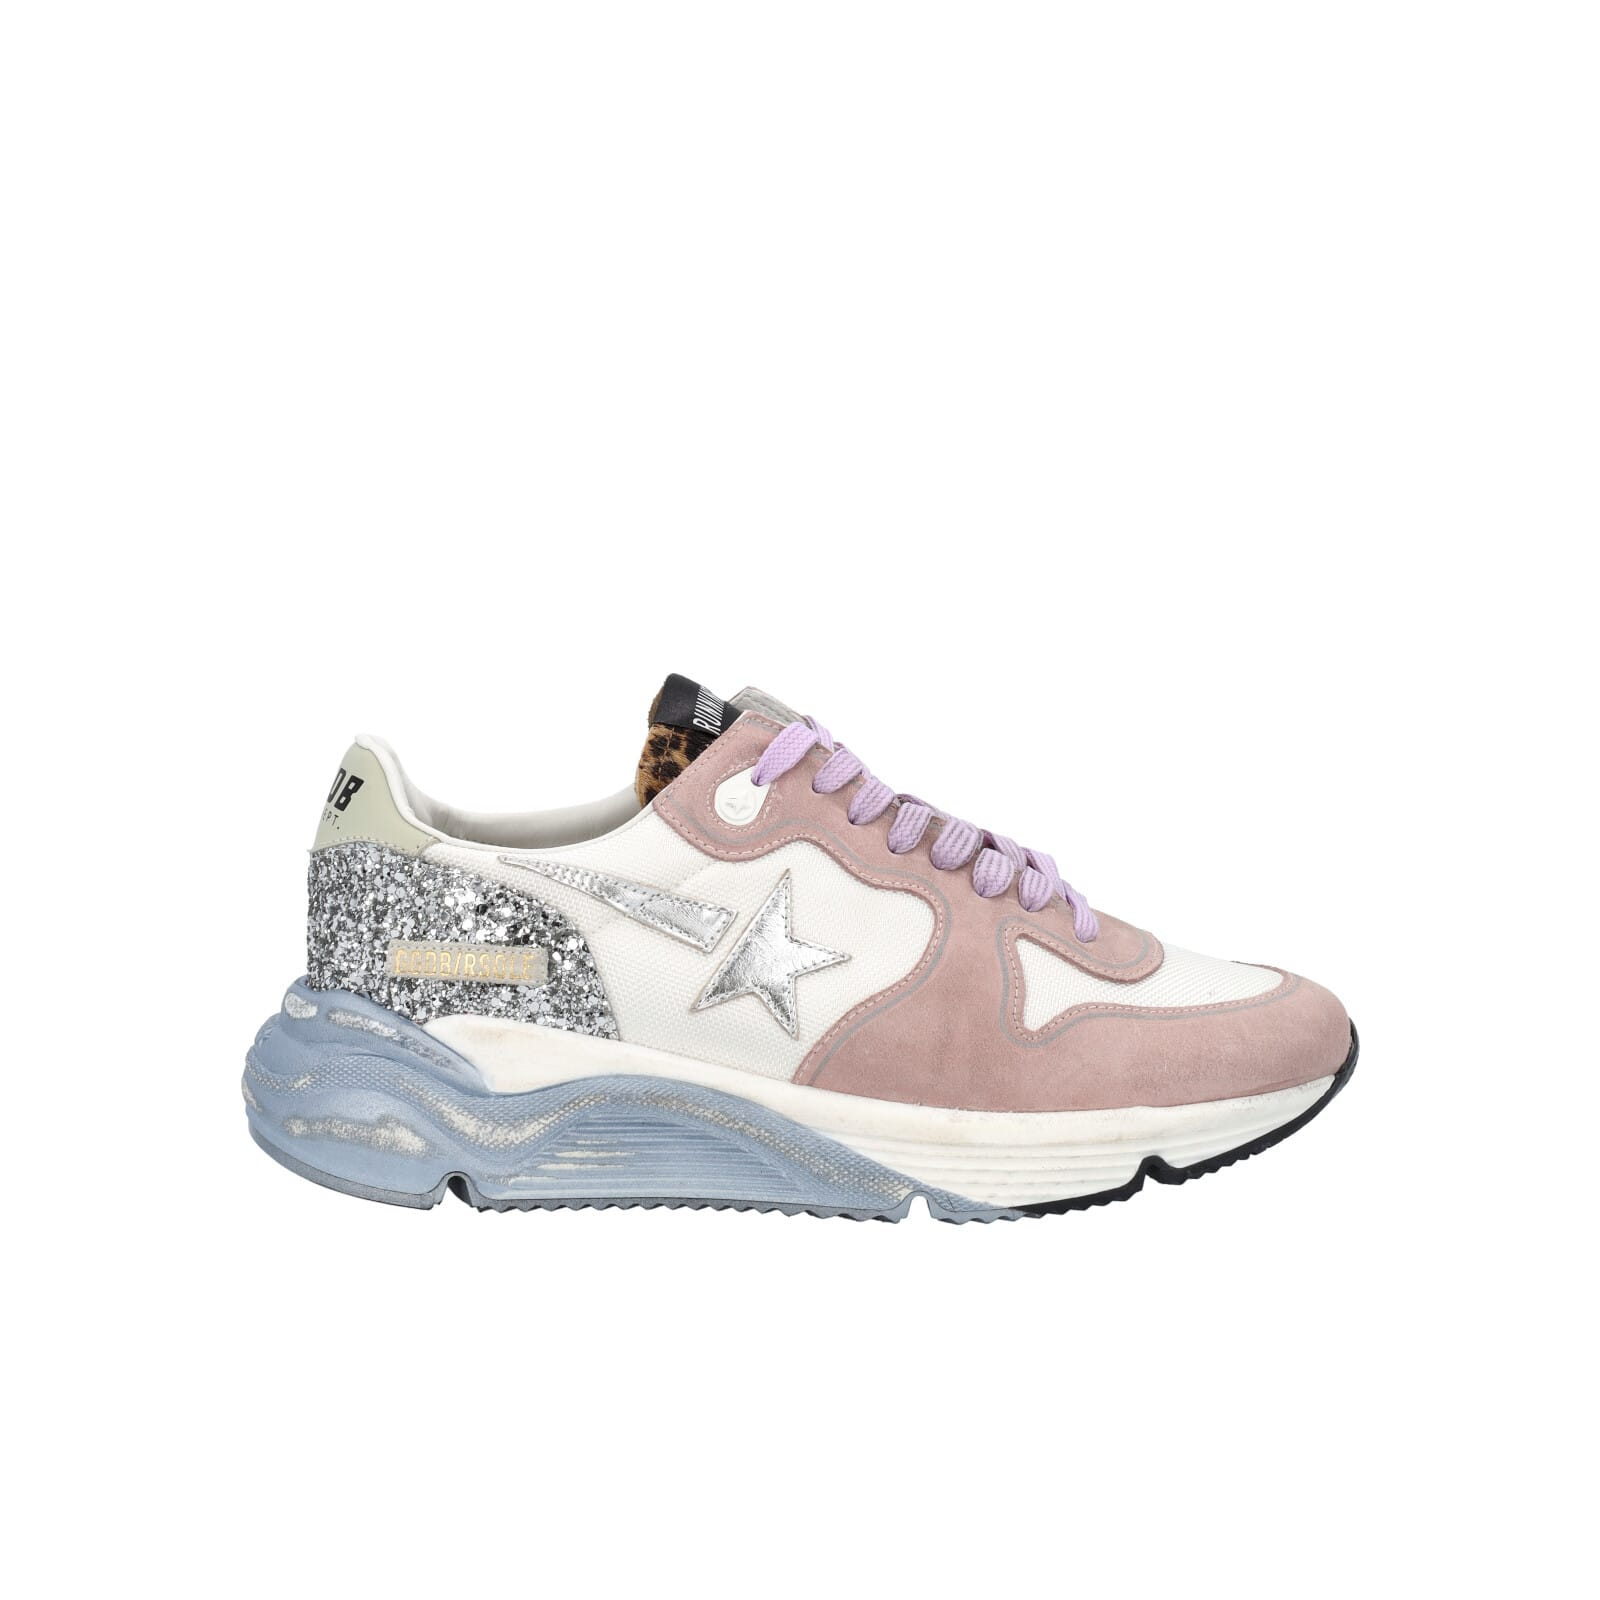 Golden Goose Running Sole Sneakers In Suede With Glitter And Ice Sole